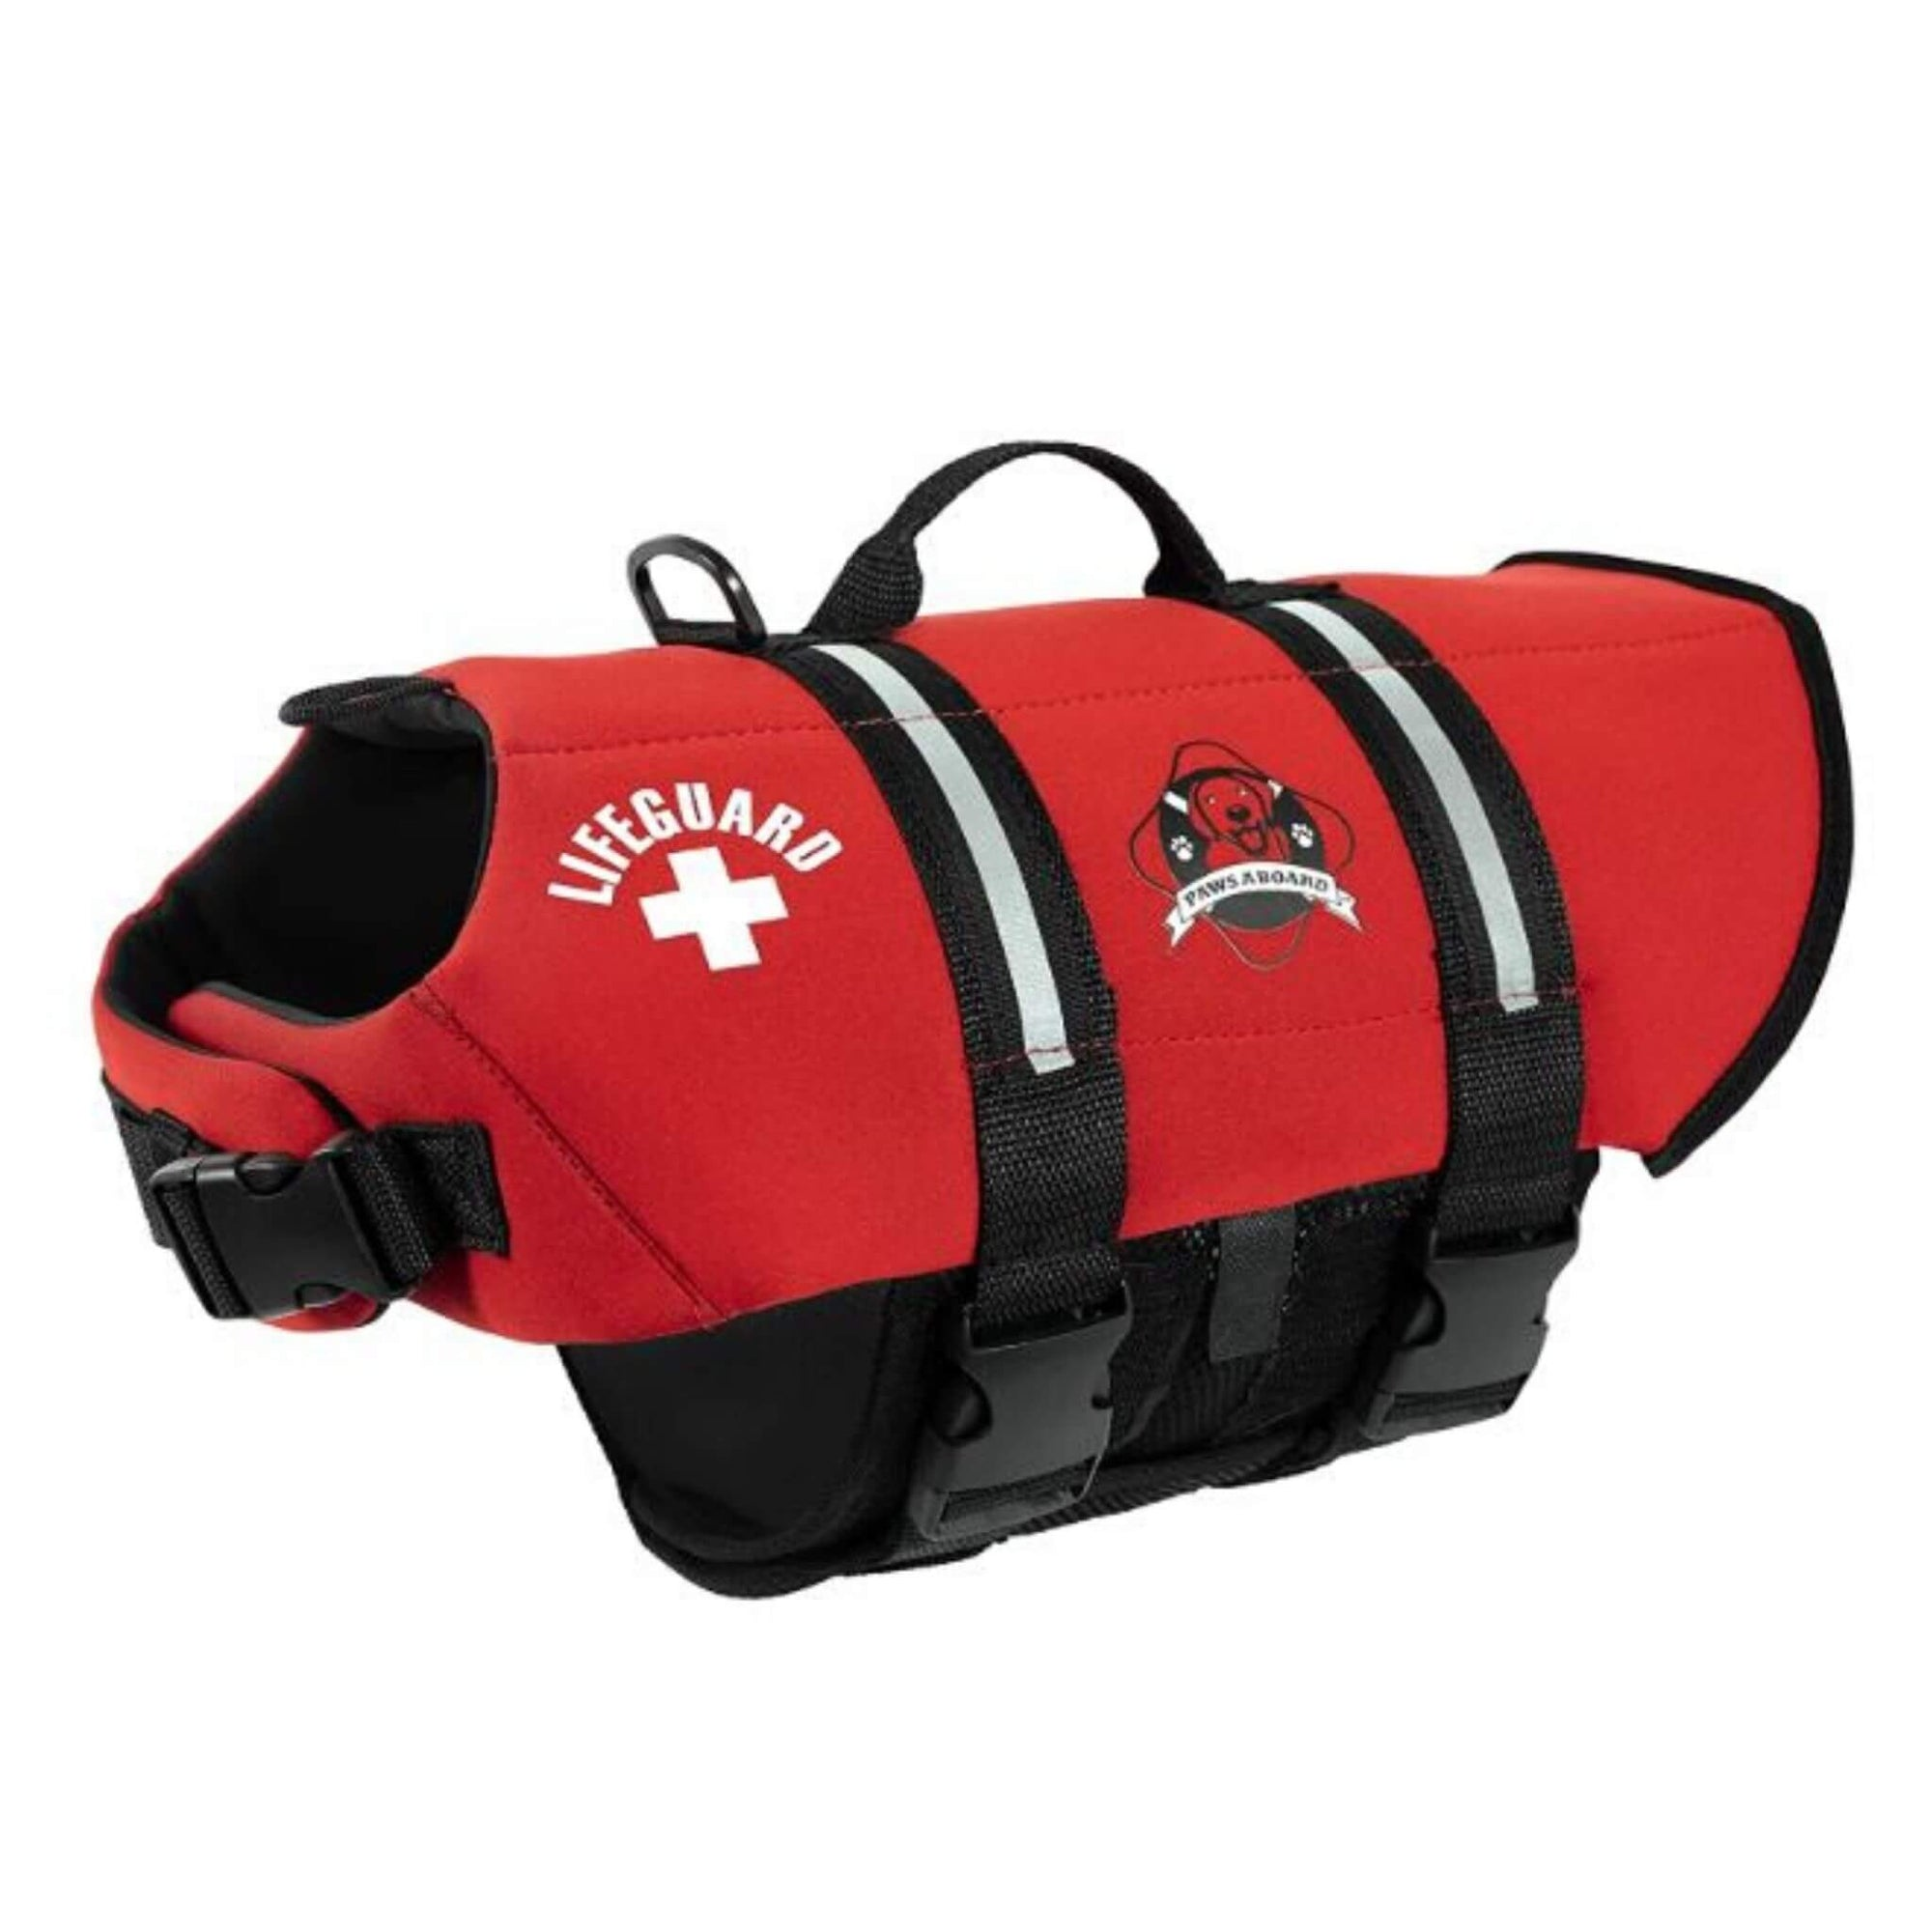 Paws Aboard Dog Life Jacket - Red